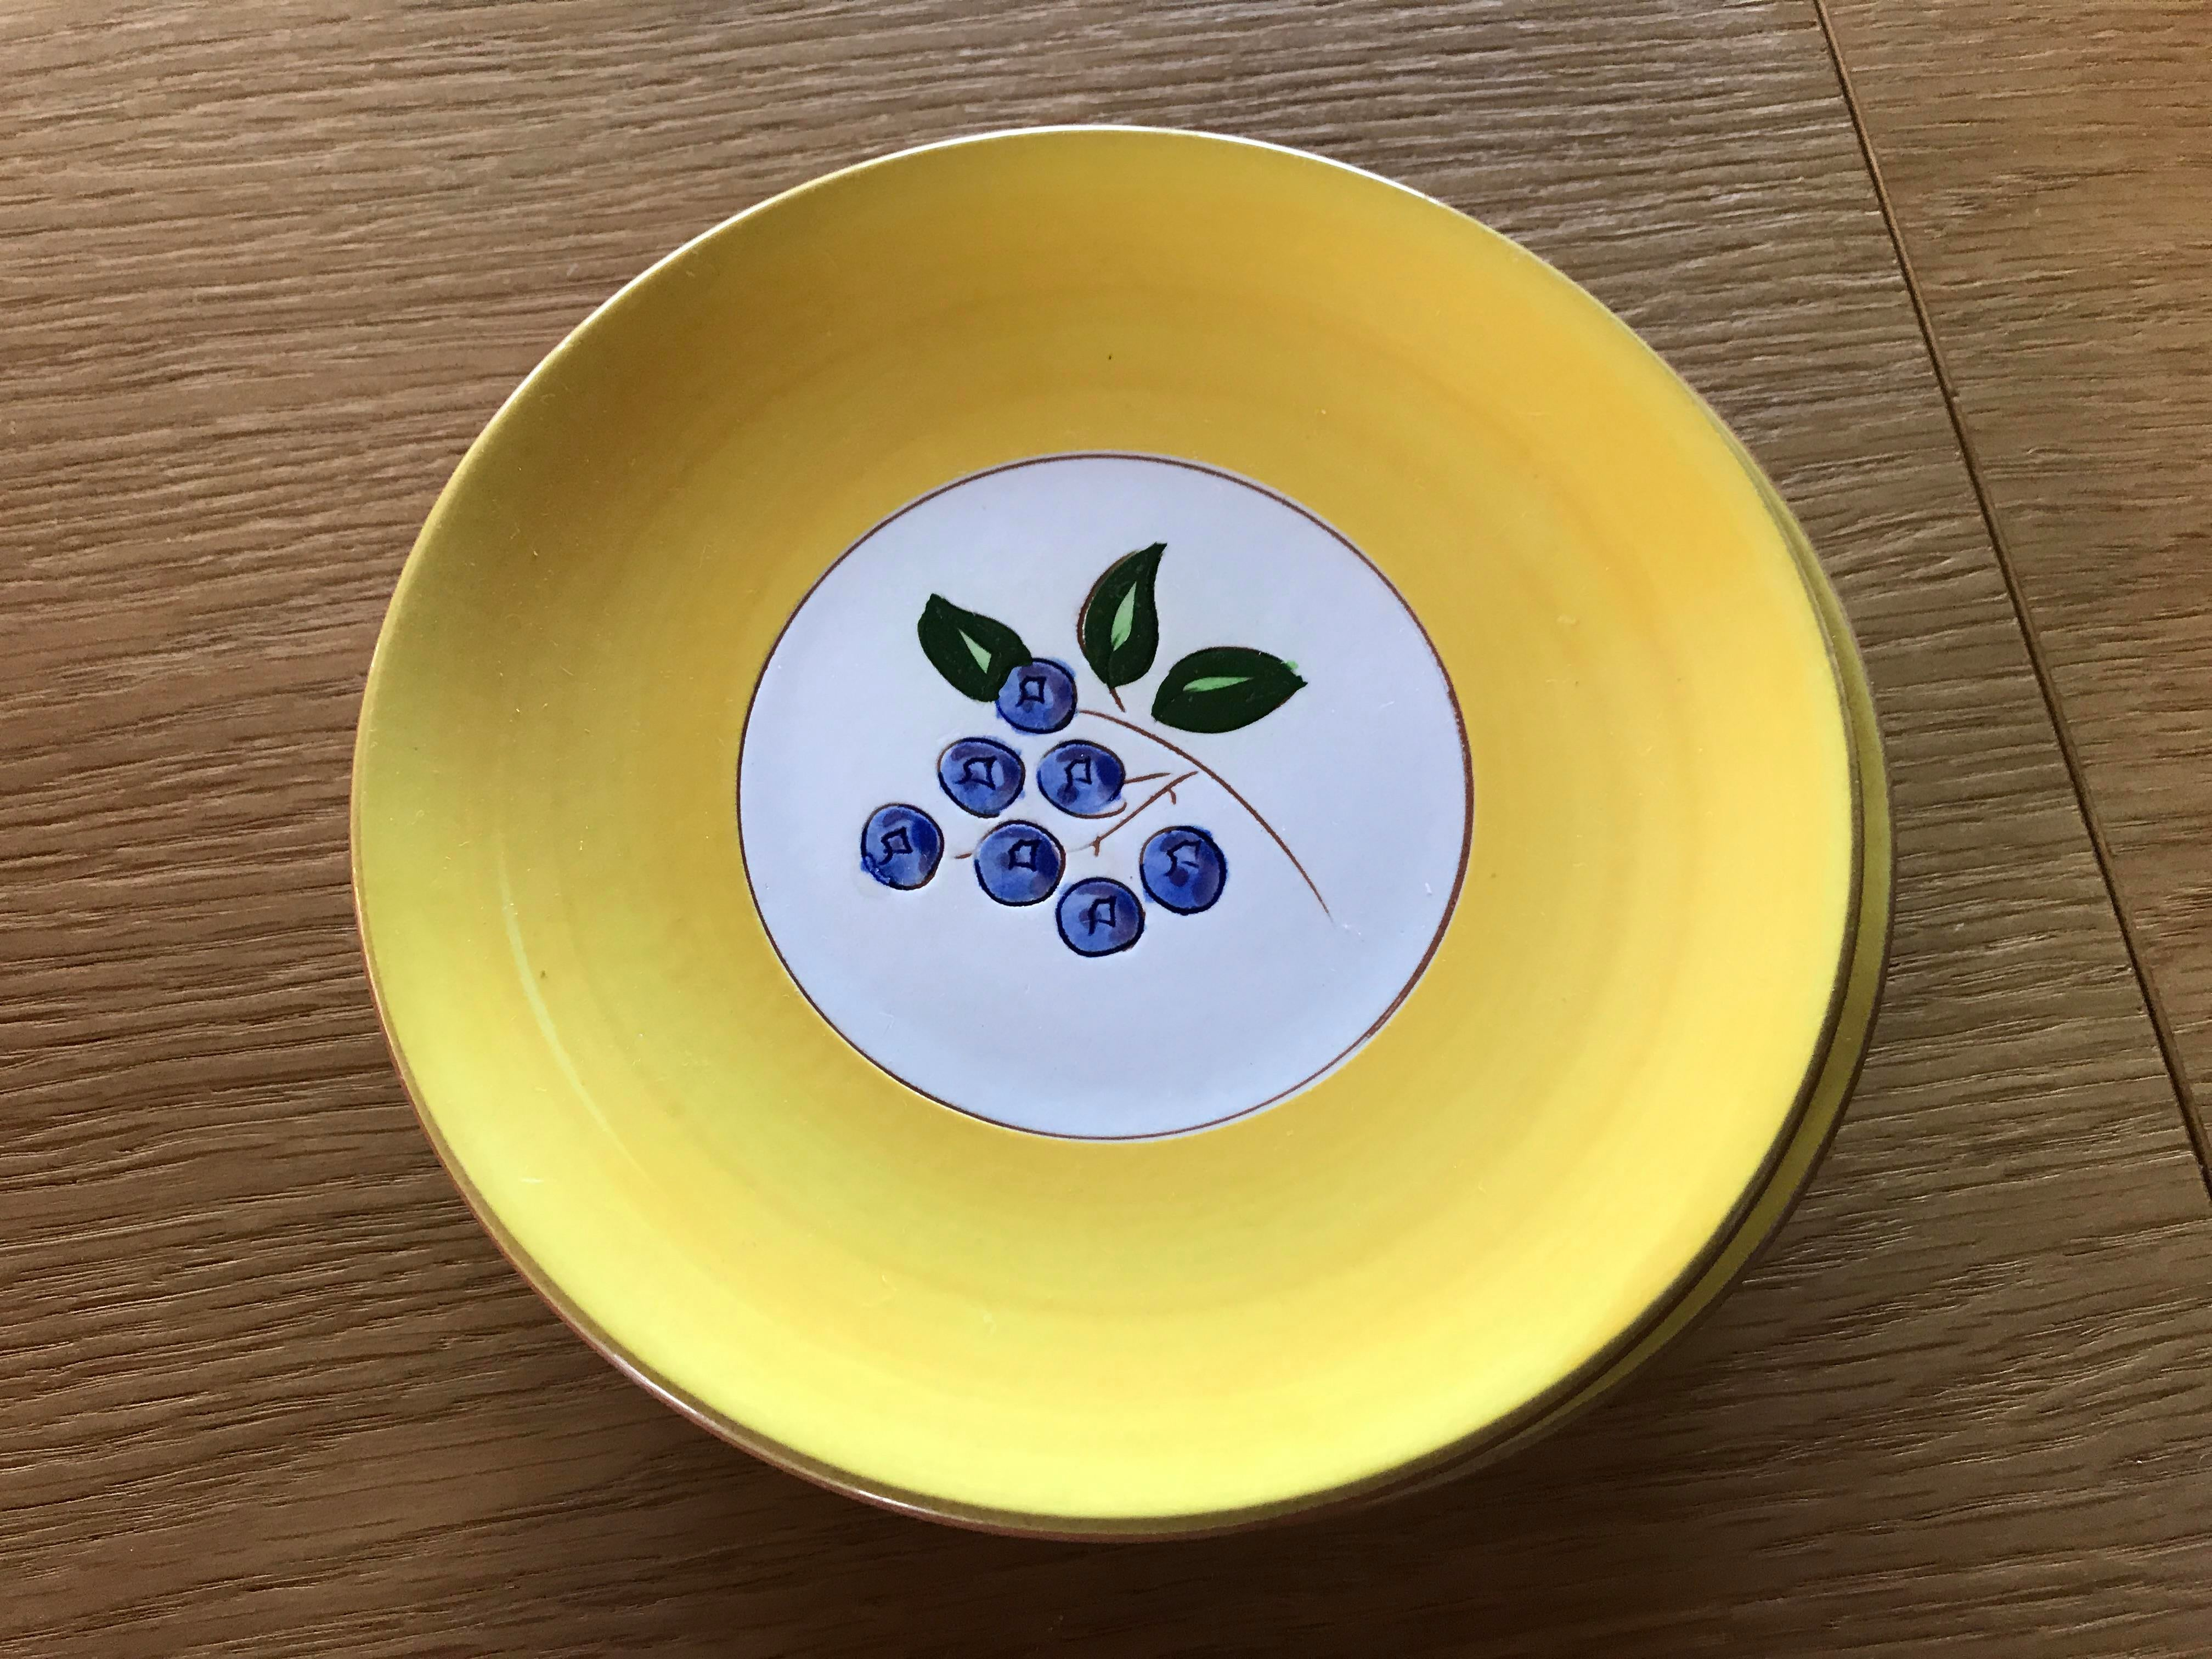 Stangl Pottery Blueberry Motif Yellow Dinnerware - Set of 22 - Image 9 of 10  sc 1 st  Chairish & Stangl Pottery Blueberry Motif Yellow Dinnerware - Set of 22 ...